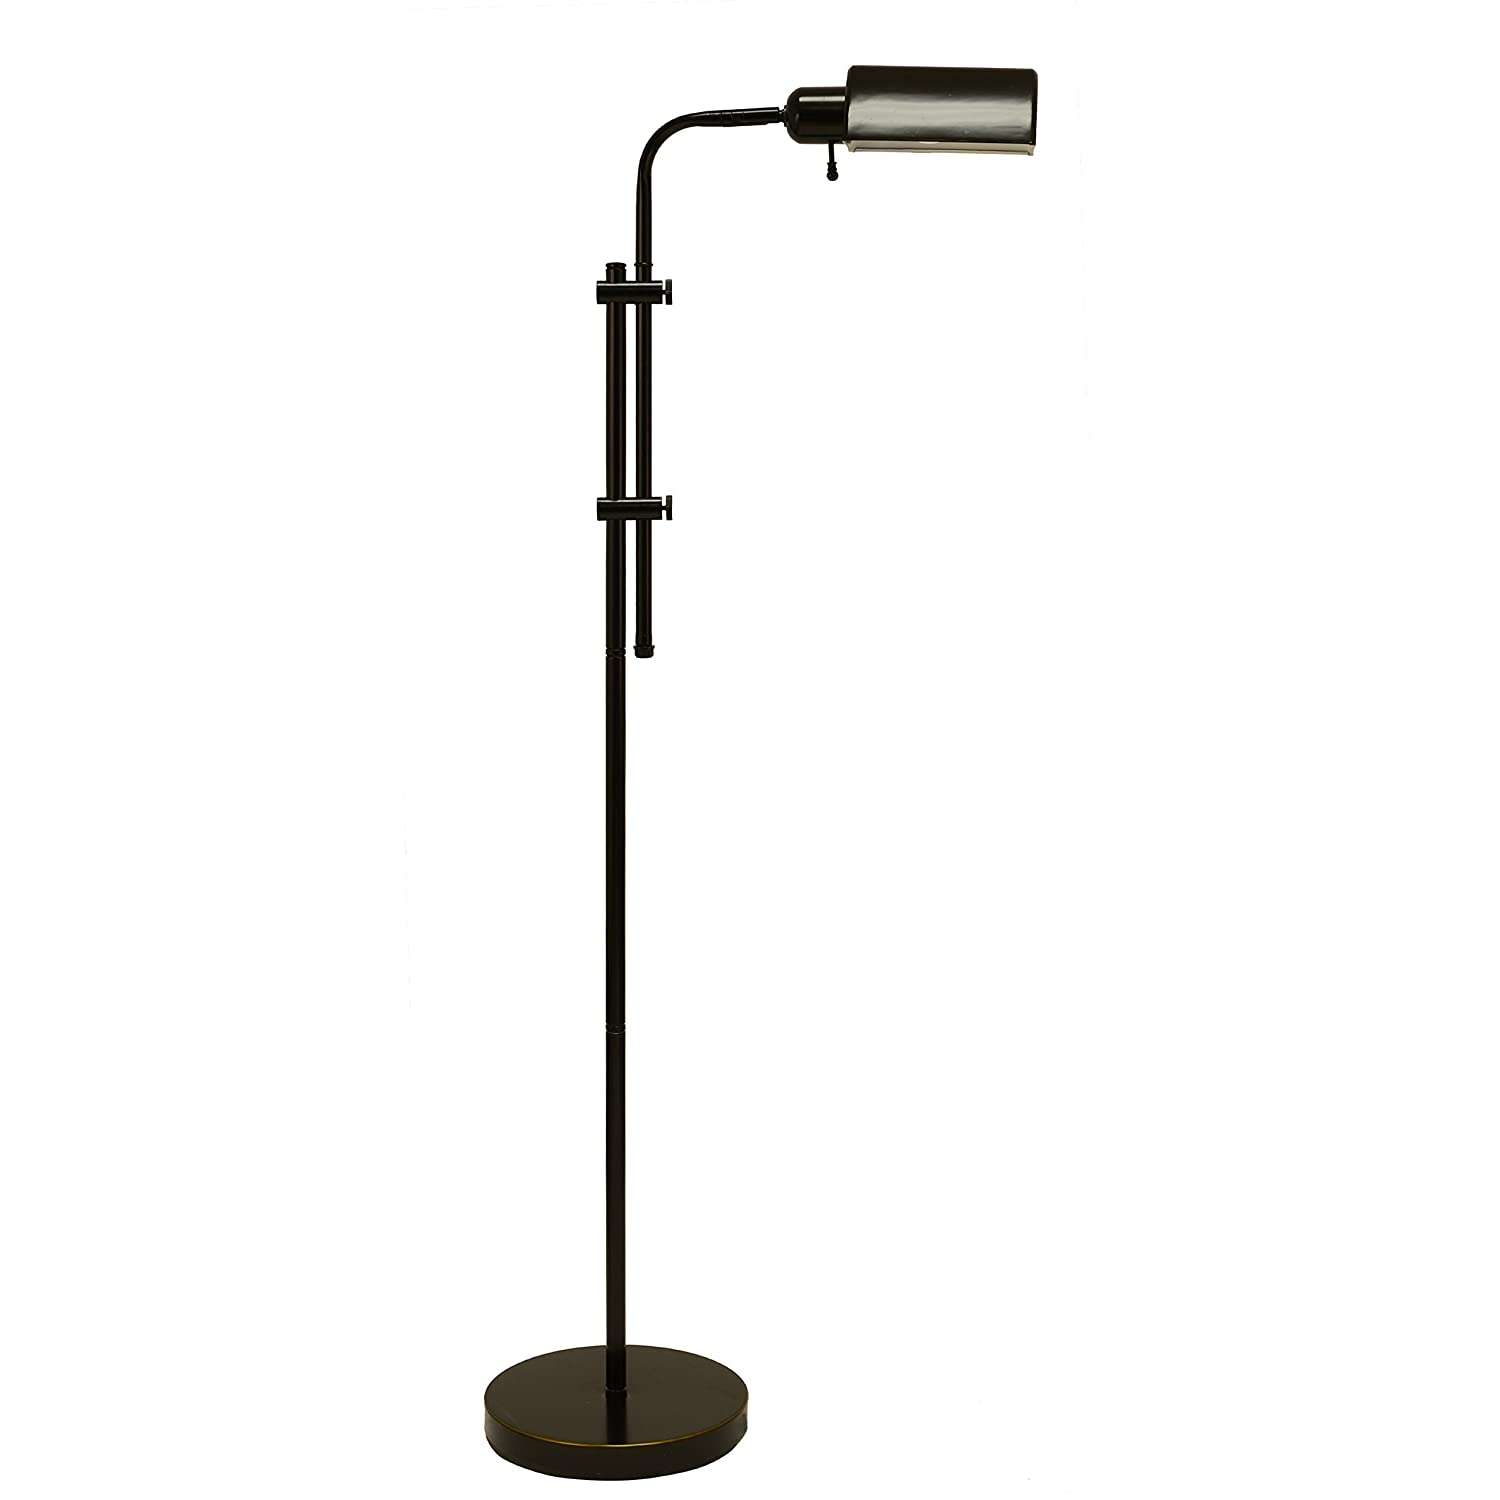 Adjustable Pharmacy Floor Lamp in Oil Rubbed Bronze - - Amazon.com